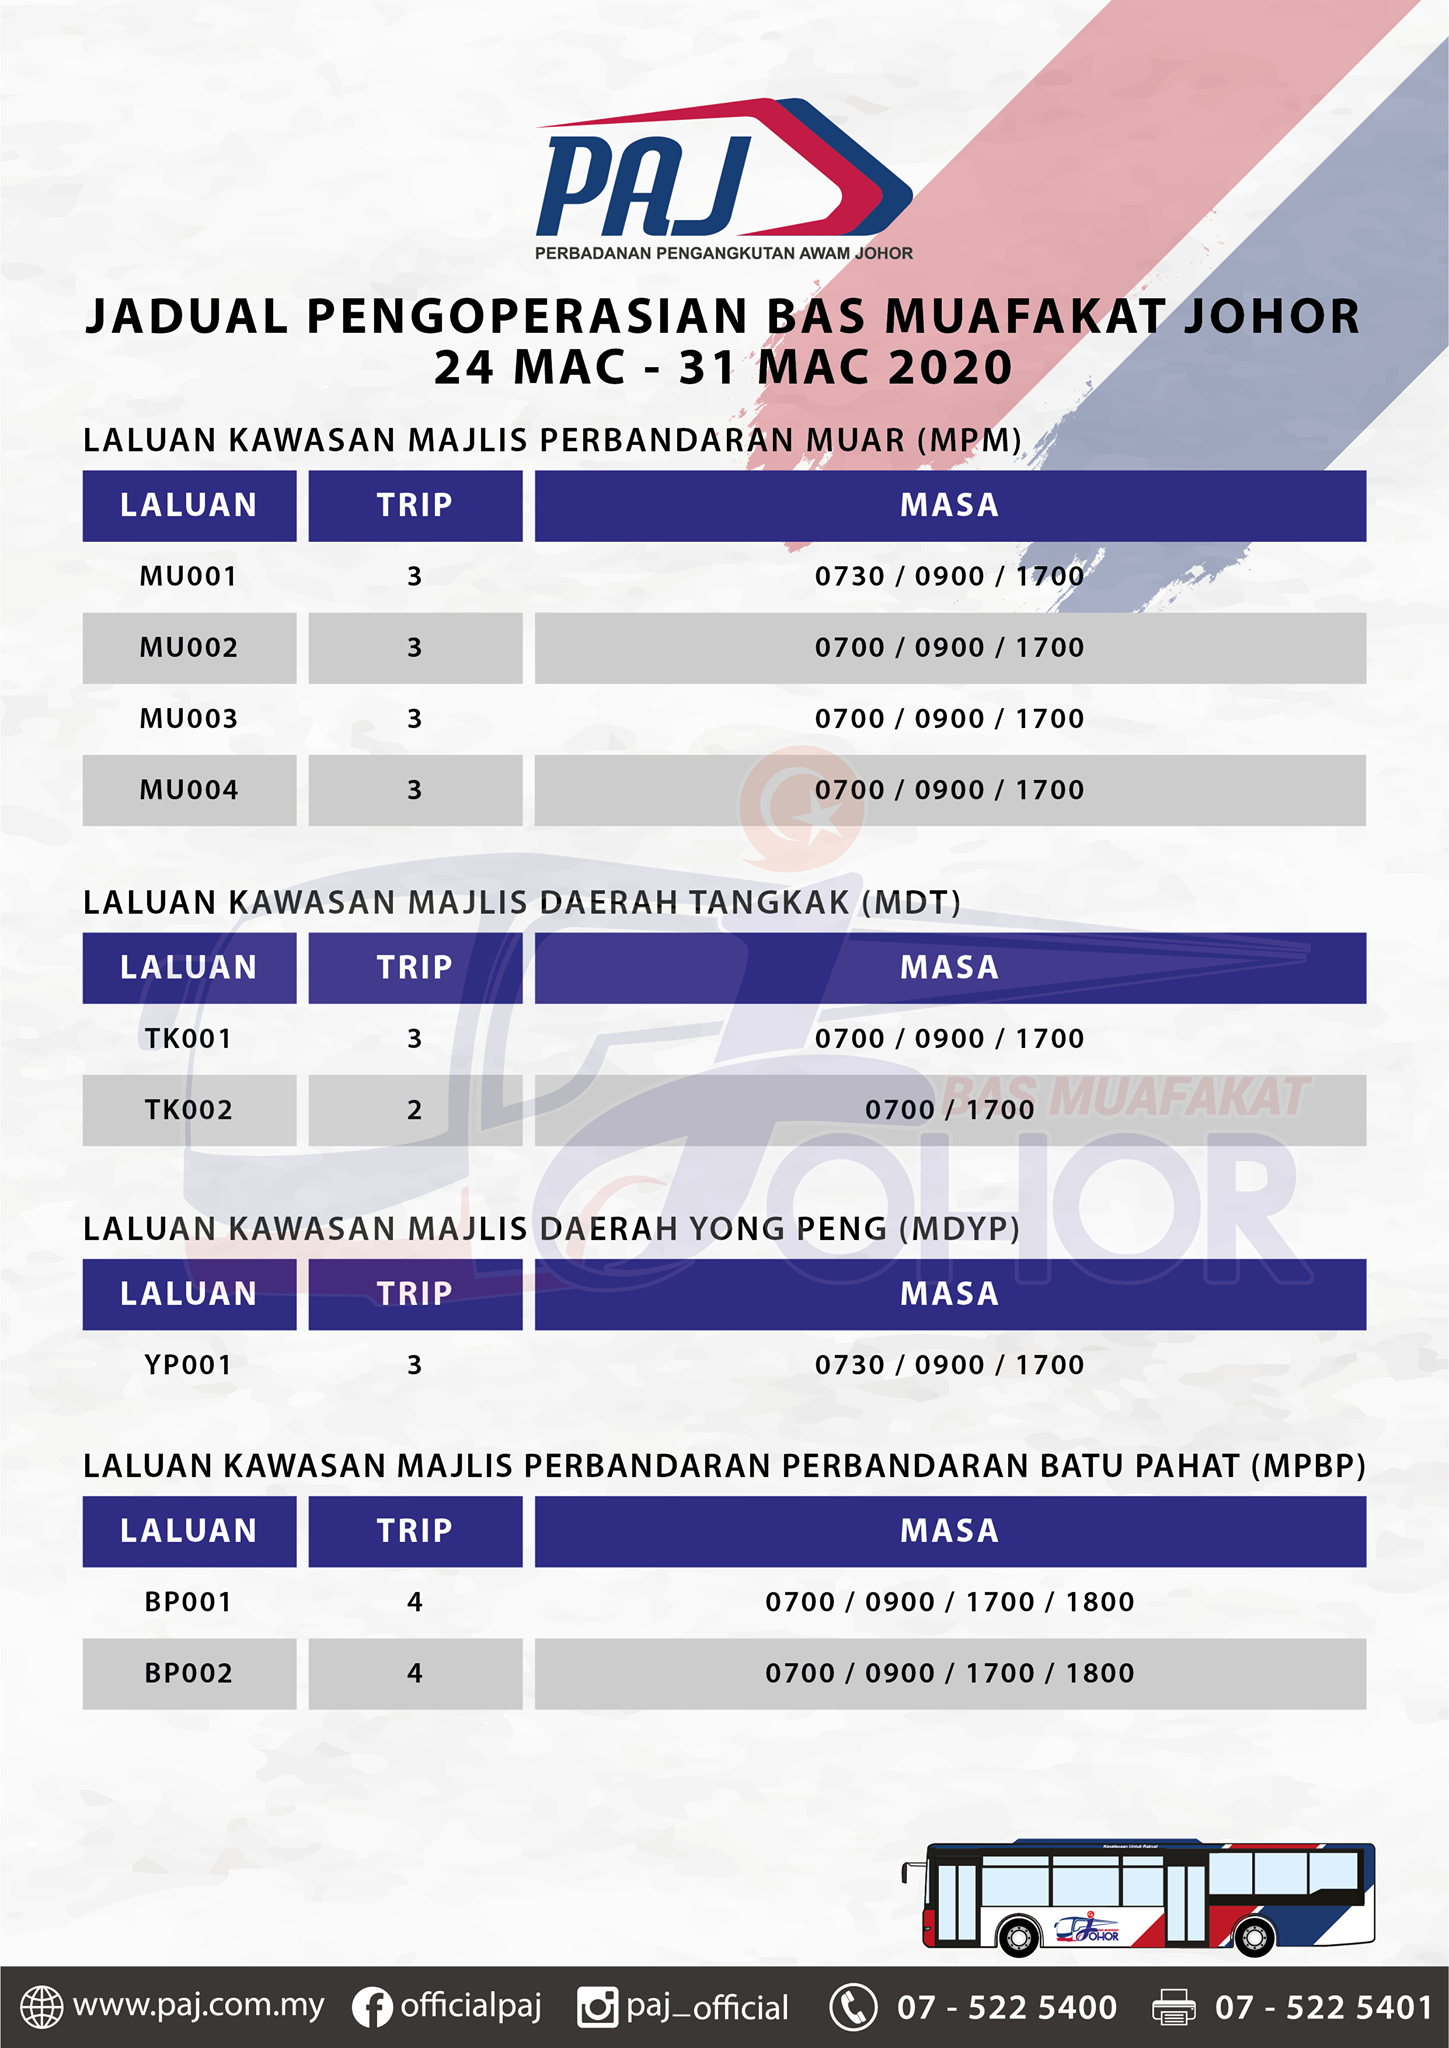 Official PAJ poster on the change in operation hours of Bas Muafakat Johor bus services in Muar, Tangkak, Yong Peng and Batu Pahat districts